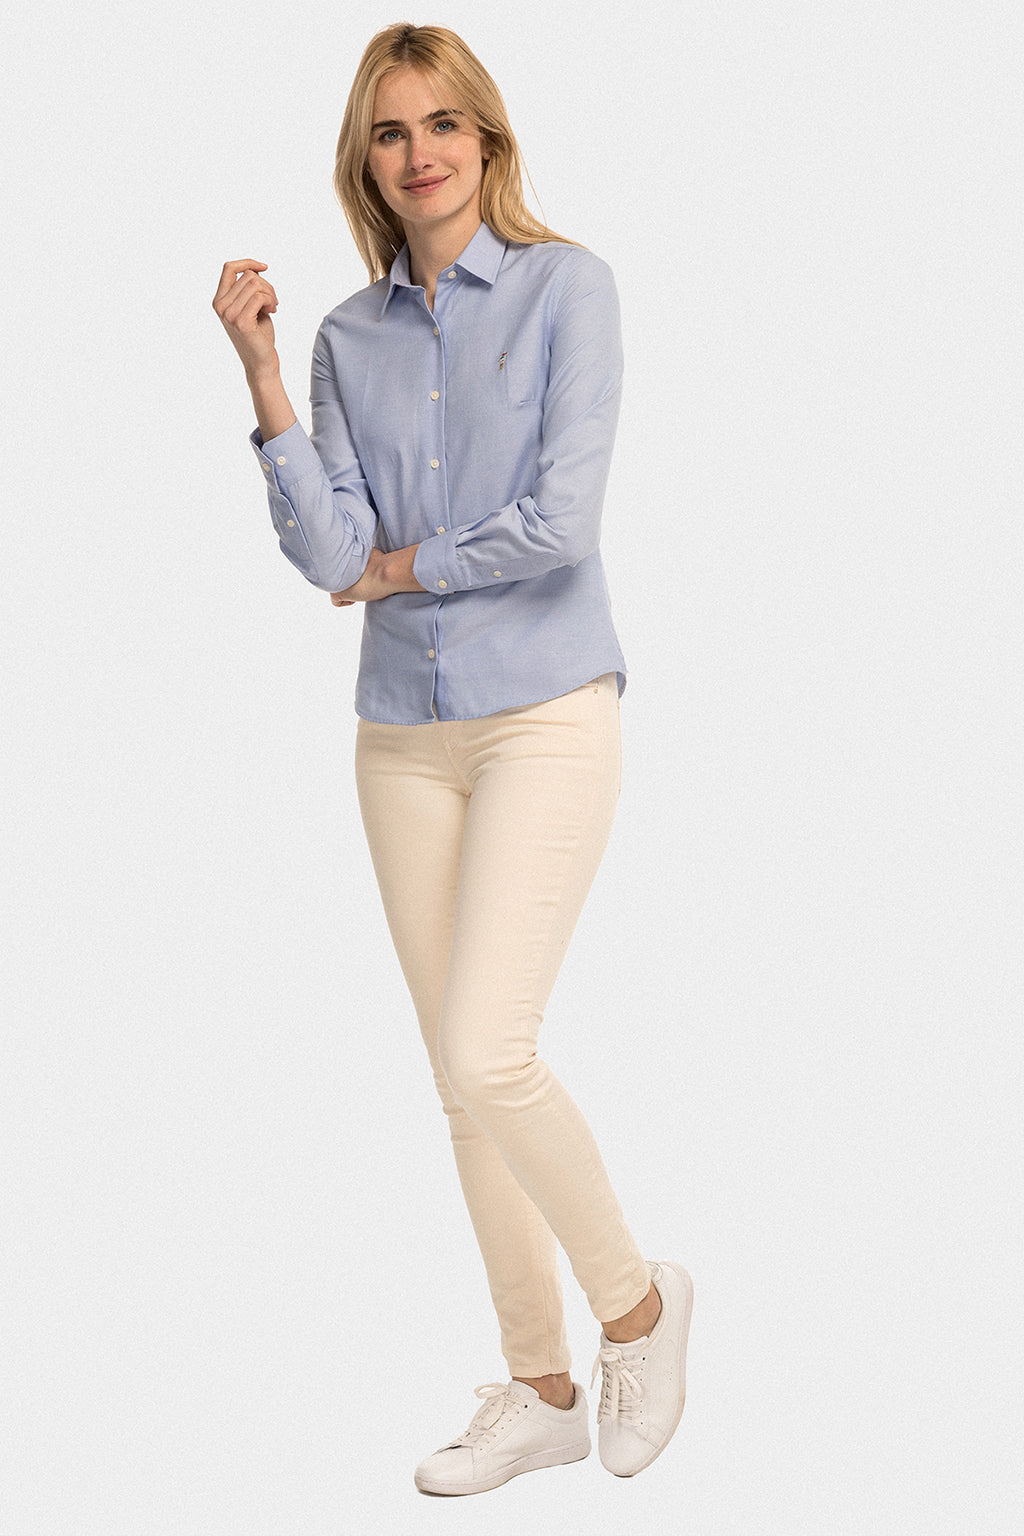 Camisa MISS RIGBY COLOR OXFORD Azul Celeste